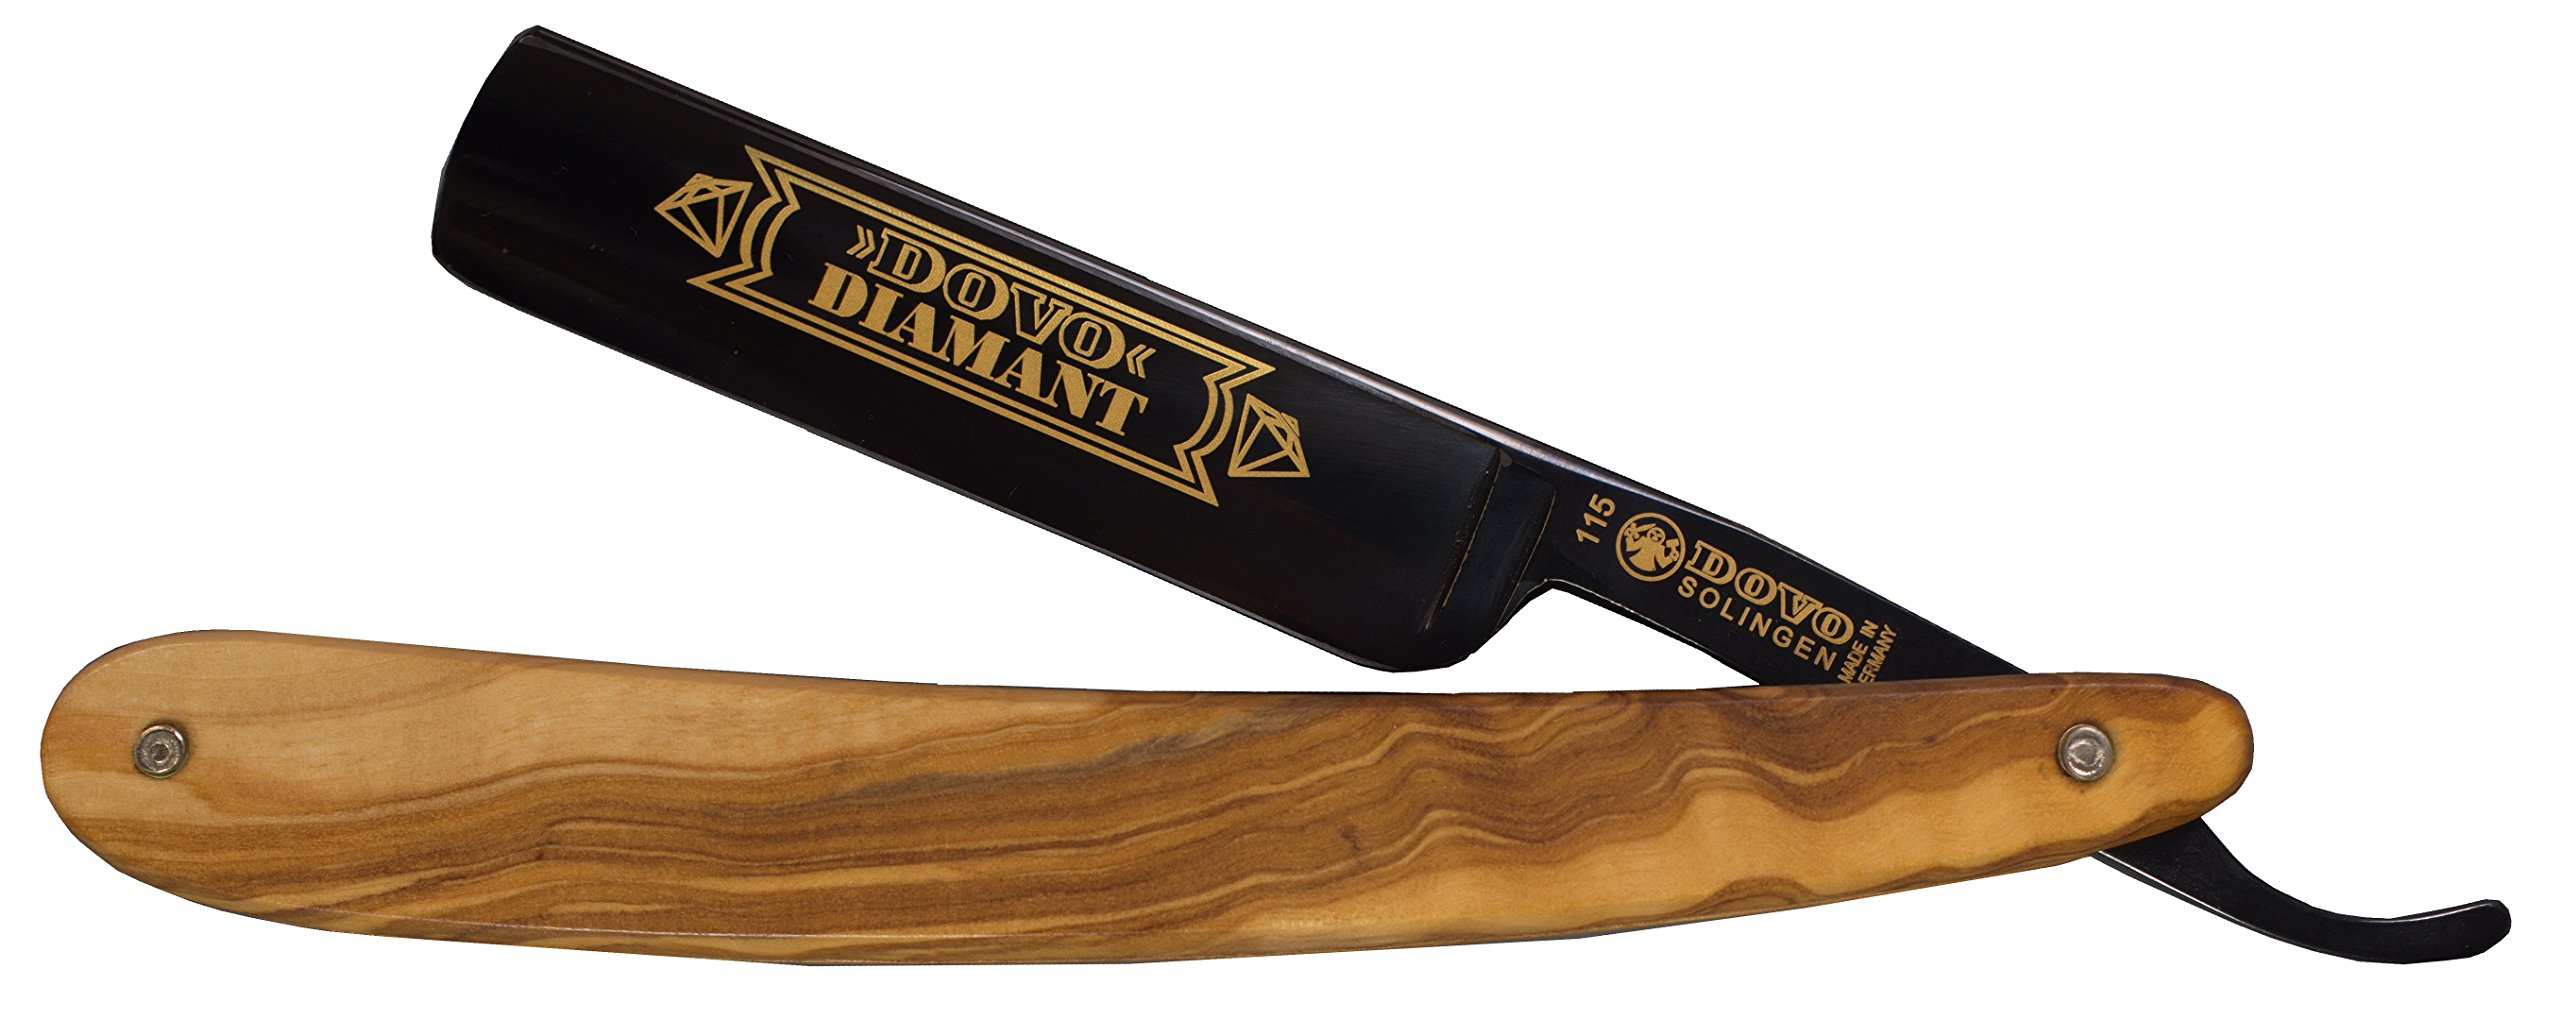 Dovo 1155861 Diamant 5/8'' Oxidized Carbon Steel Straight Razor, Full Hollow Ground, Olivewood Scales, with Shave Ready Option (Shave Ready, Unsealed)